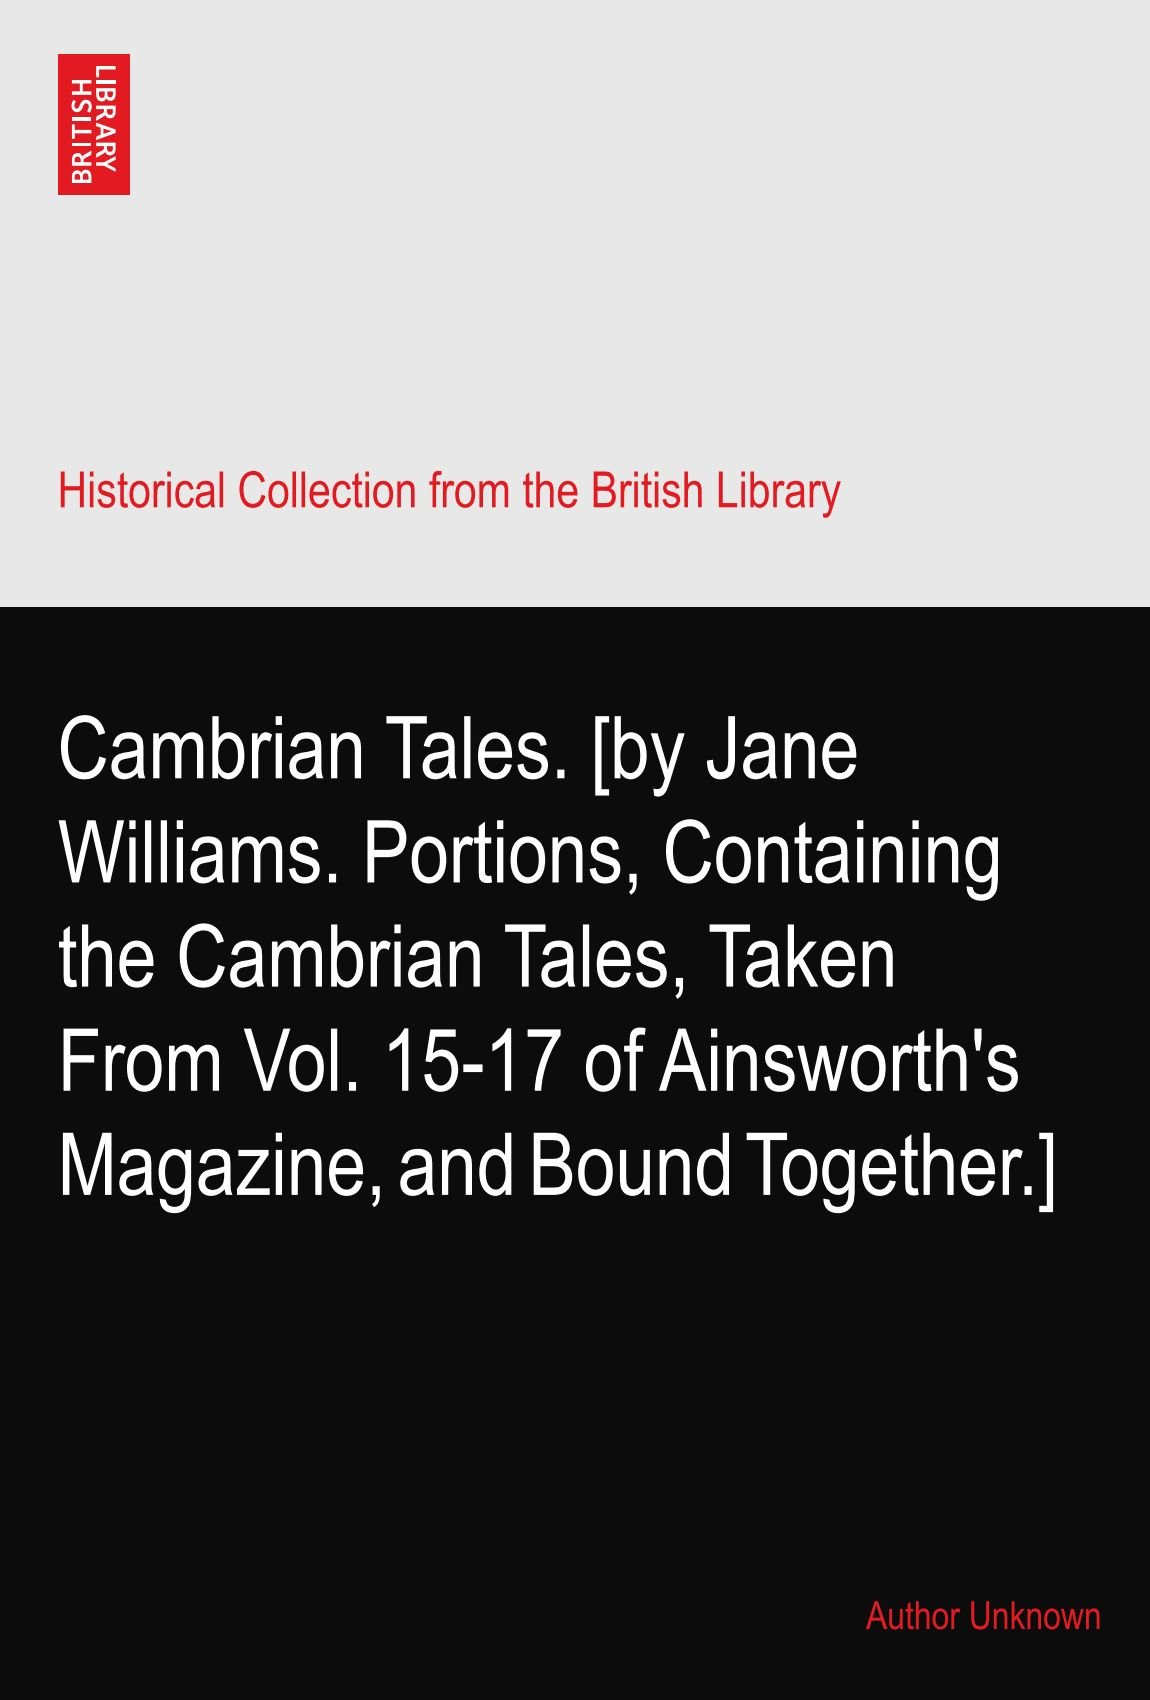 Cambrian Tales. [by Jane Williams. Portions, Containing the Cambrian Tales, Taken From Vol. 15-17 of Ainsworth's Magazine, and Bound Together.] pdf